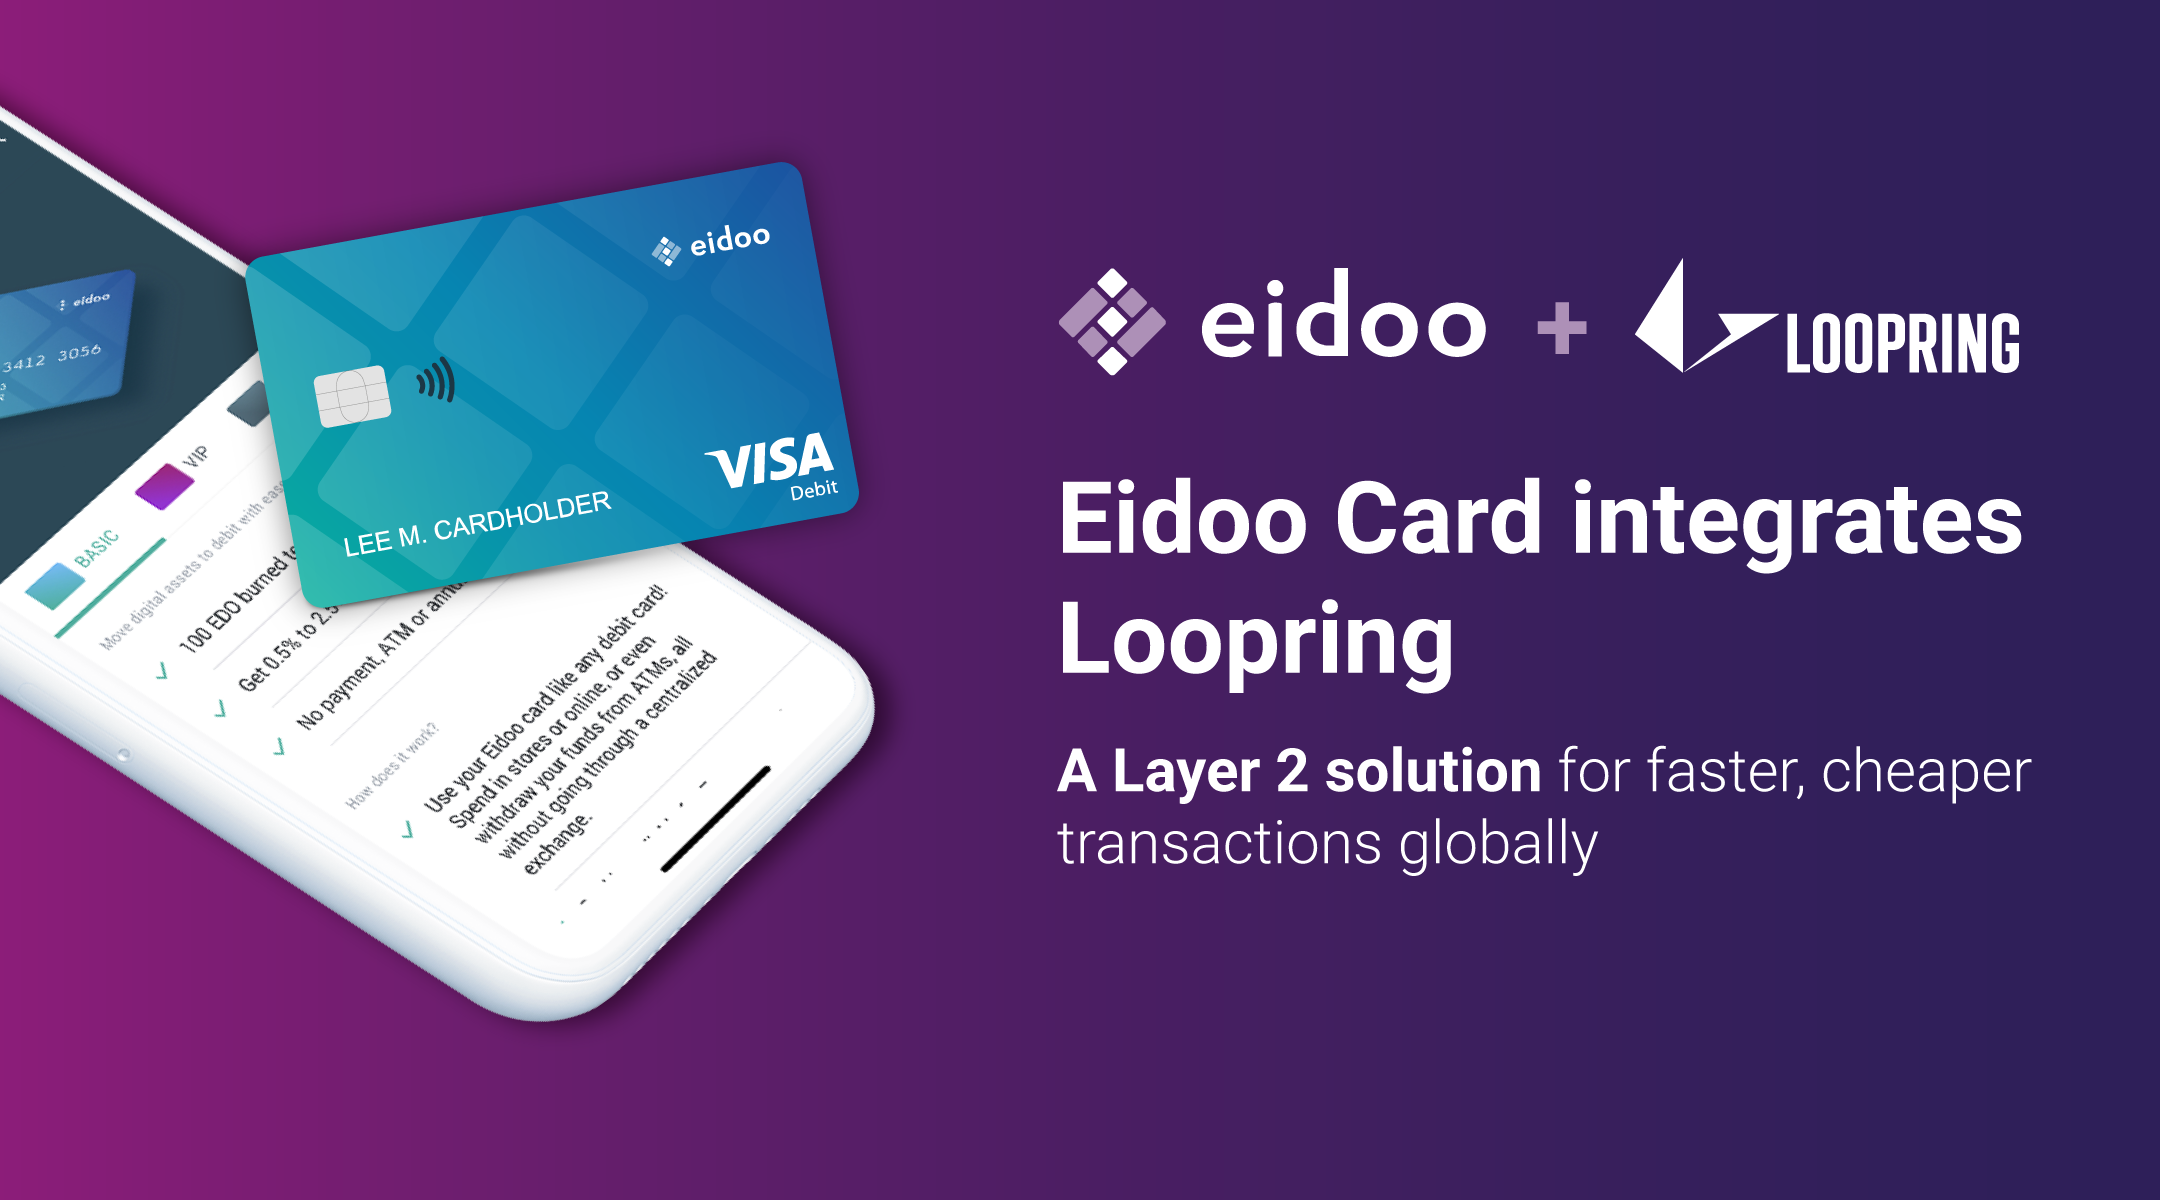 Eidoo Card integrates Loopring, the Layer 2 solution for faster, cheaper transactions globally